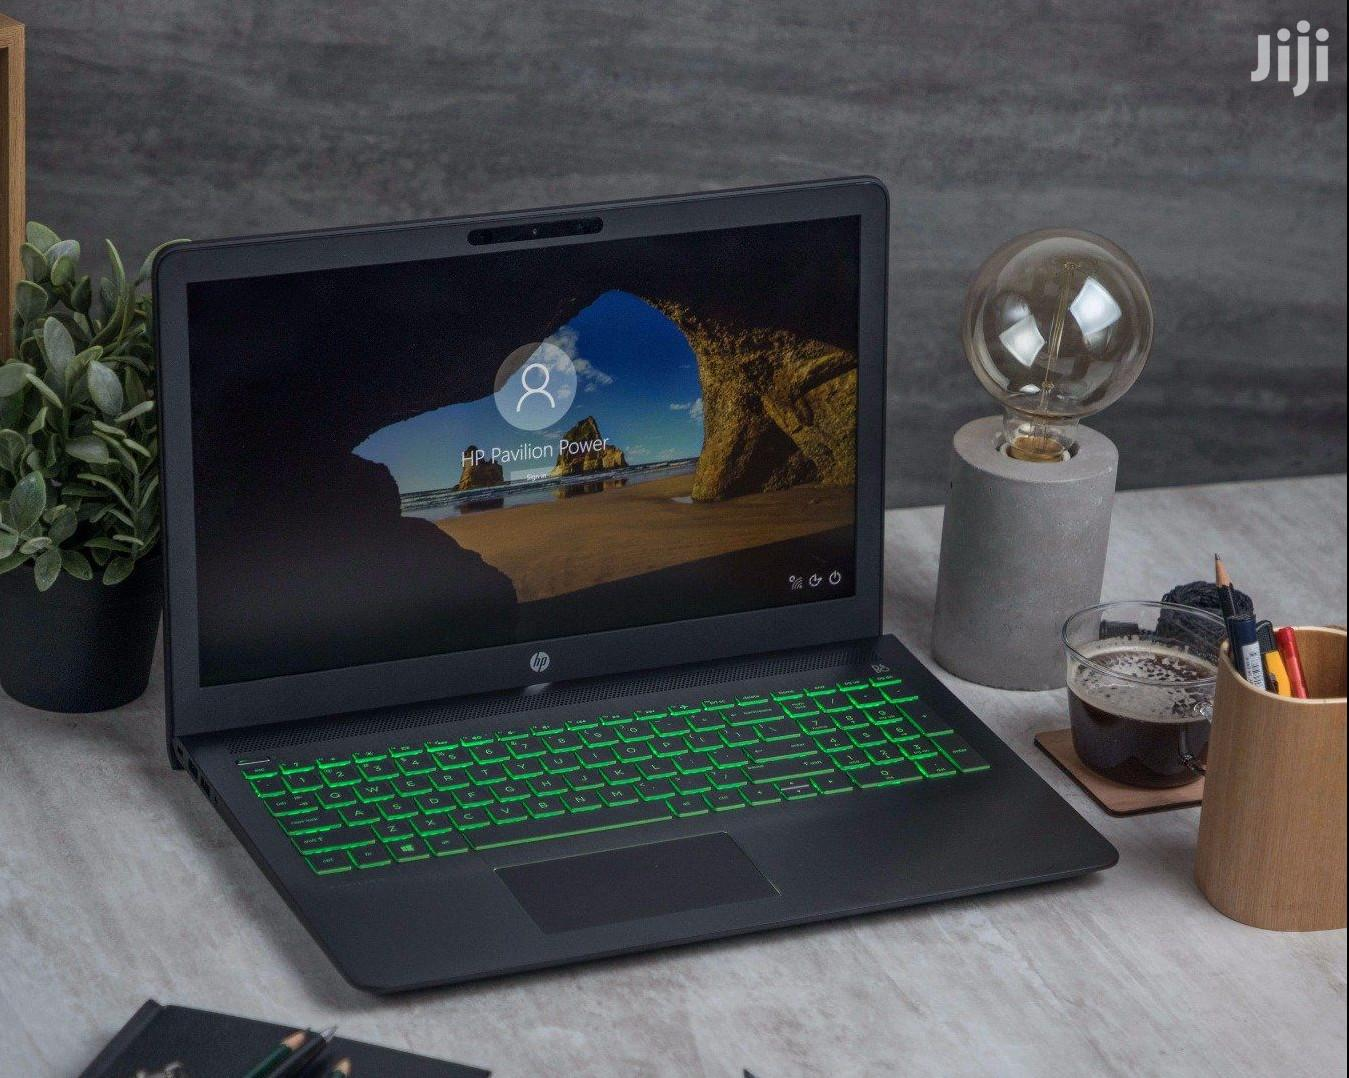 New Laptop HP Pavilion X360 15t 8GB Intel Core I7 HDD 1T   Laptops & Computers for sale in Nairobi Central, Nairobi, Kenya